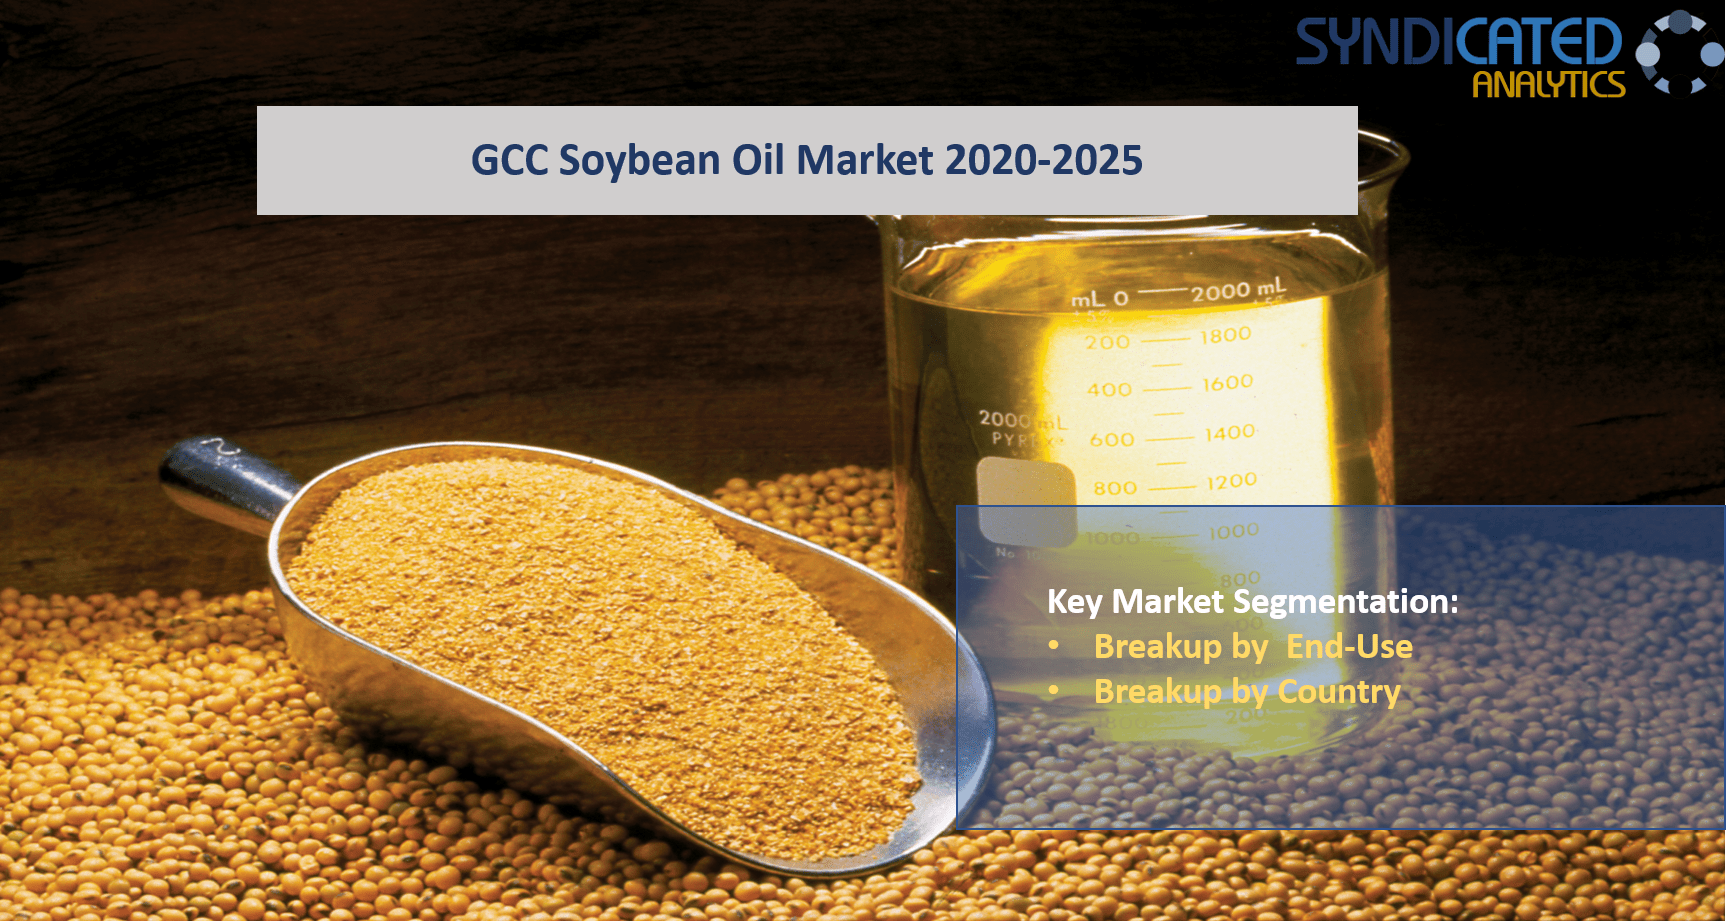 GCC Soybean Oil Market Report 2020-2025